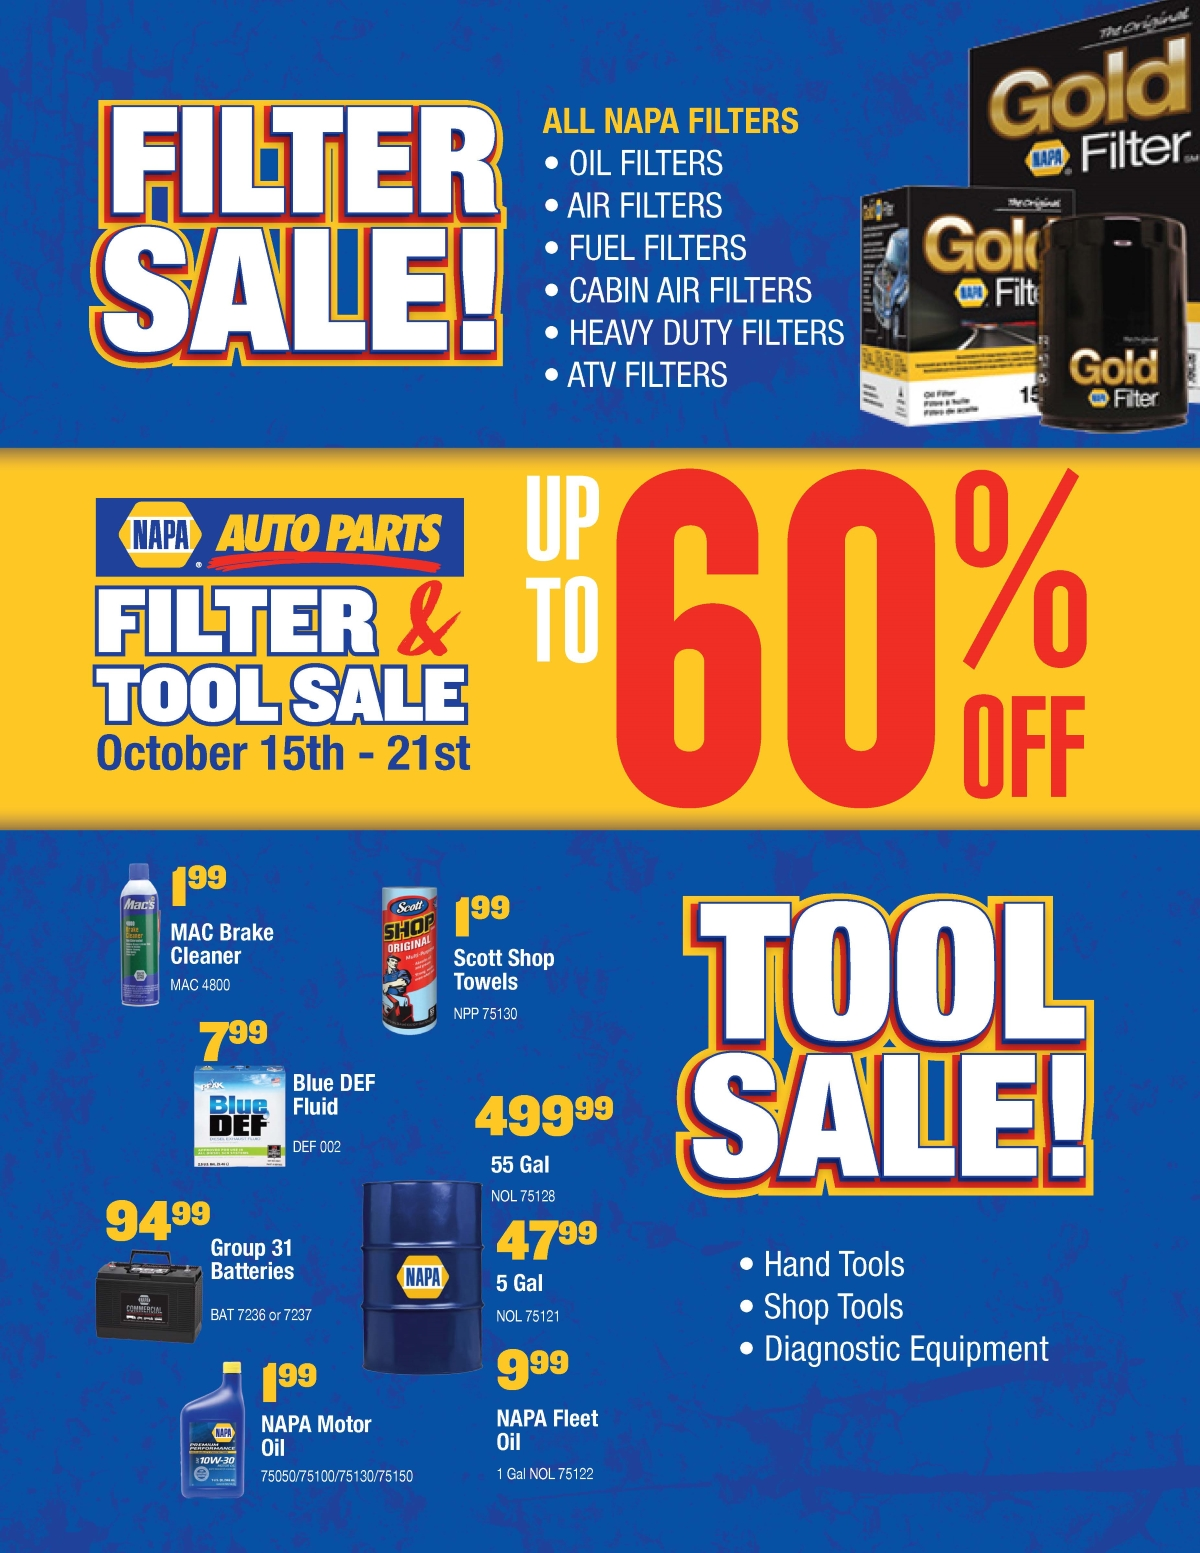 Auto Parts For Sale >> Napa Auto Parts Filter And Tool Sale October 15th To 21st 2017